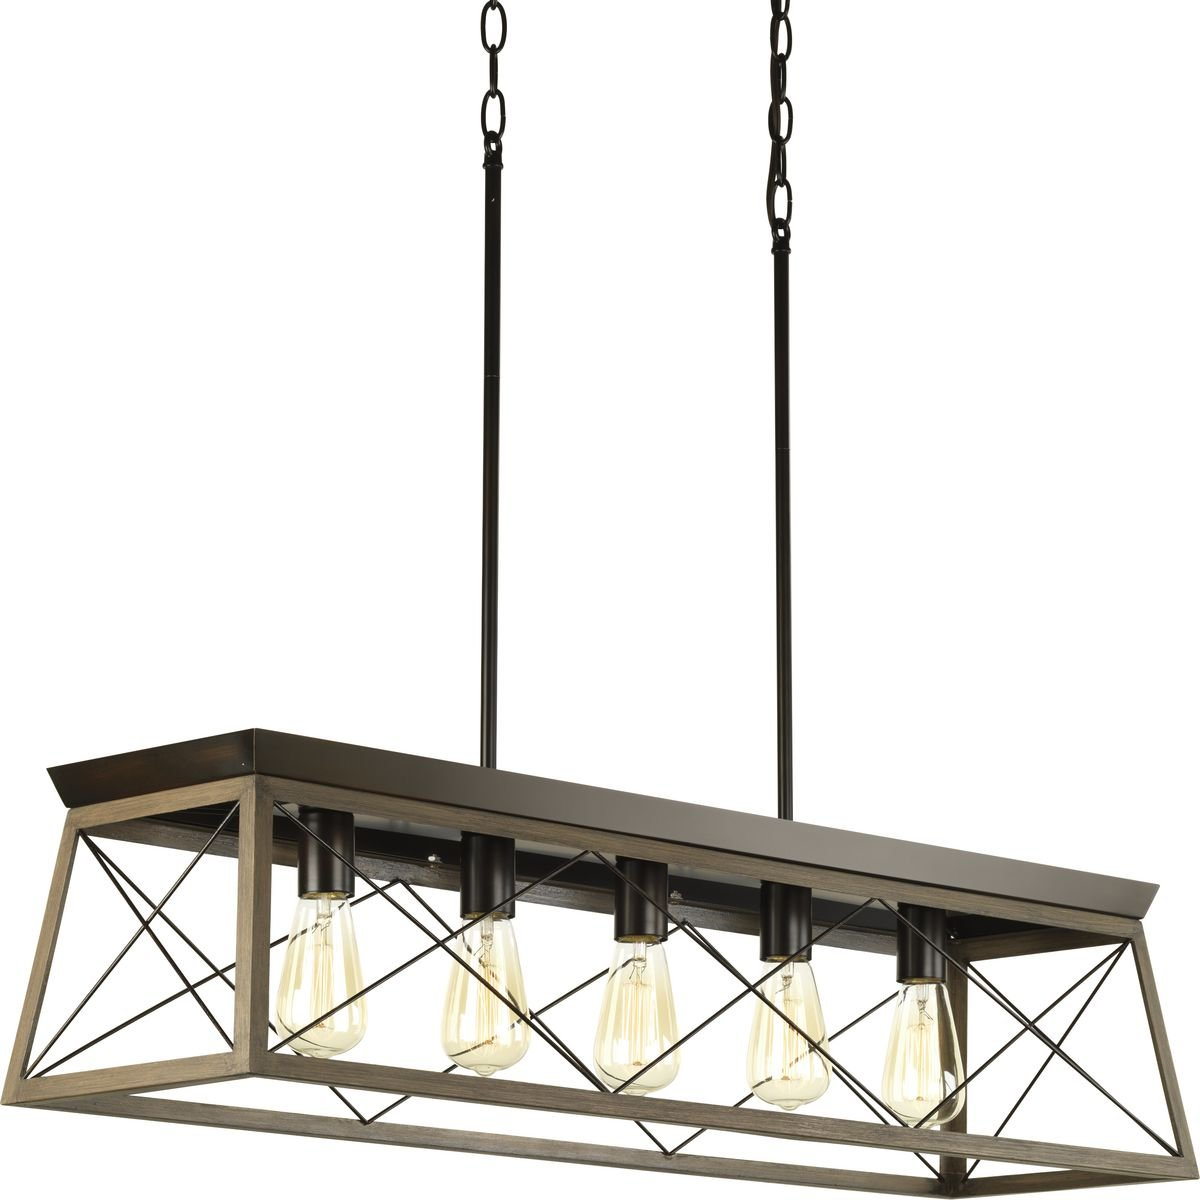 Progress Lighting P400048-020 Briarwood Antique Bronze Five-Light Linear Chandelier,